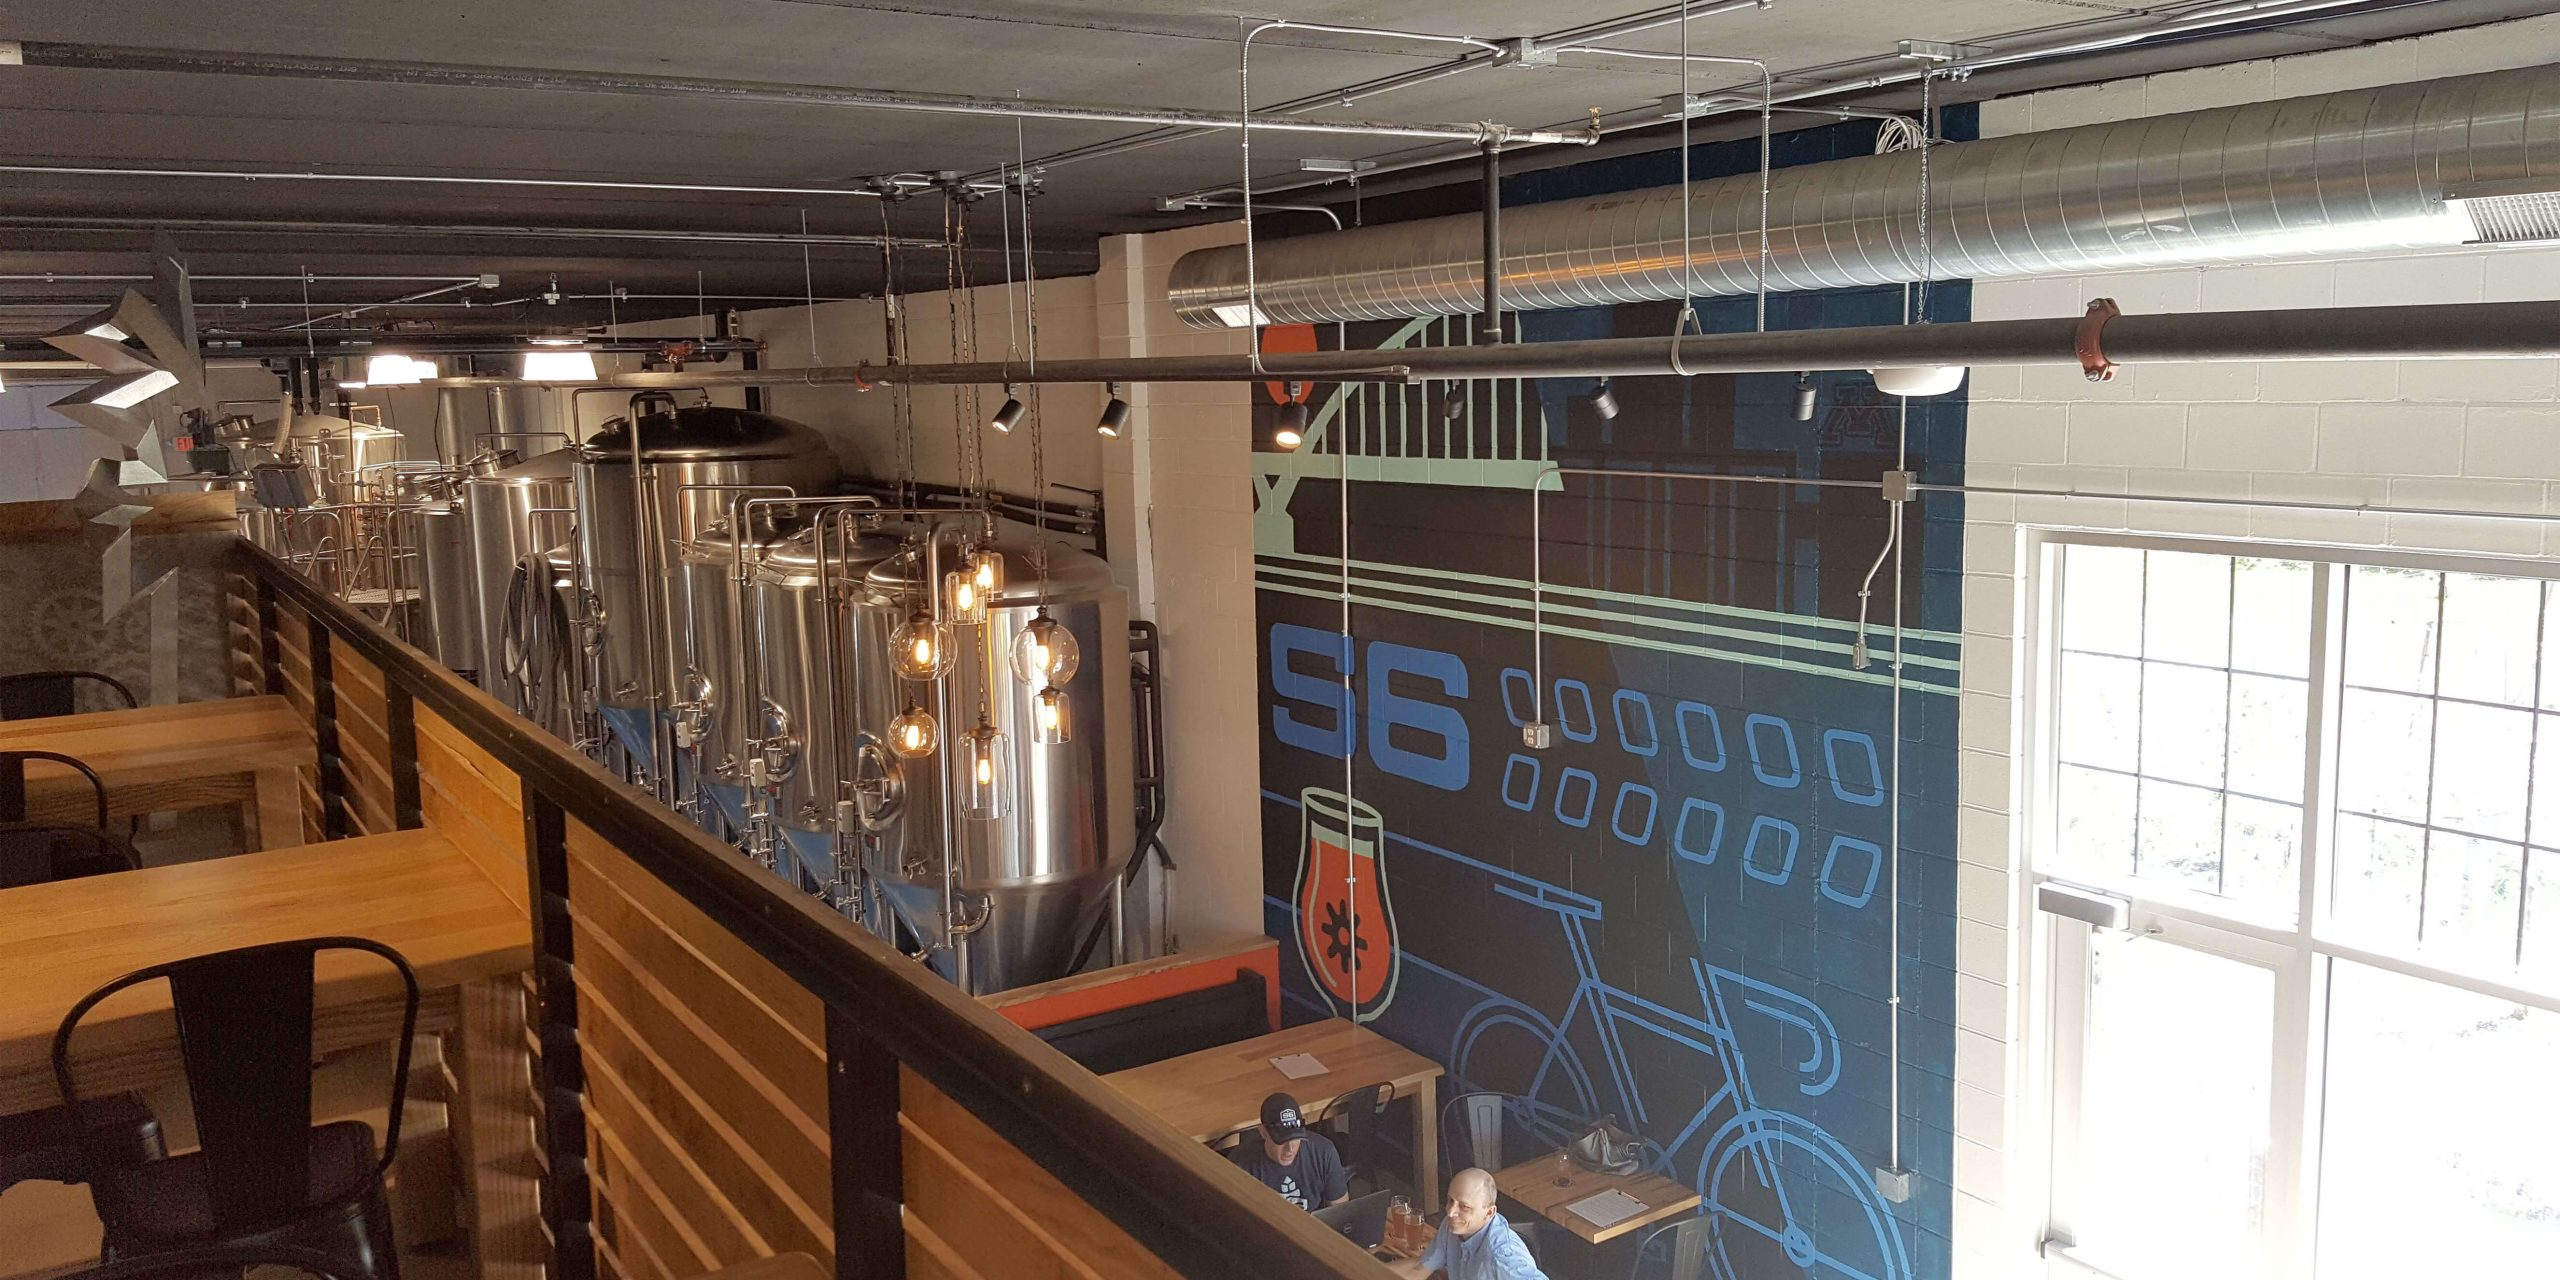 Inside the taproom at 56 Brewing in Minneapolis, Minnesota